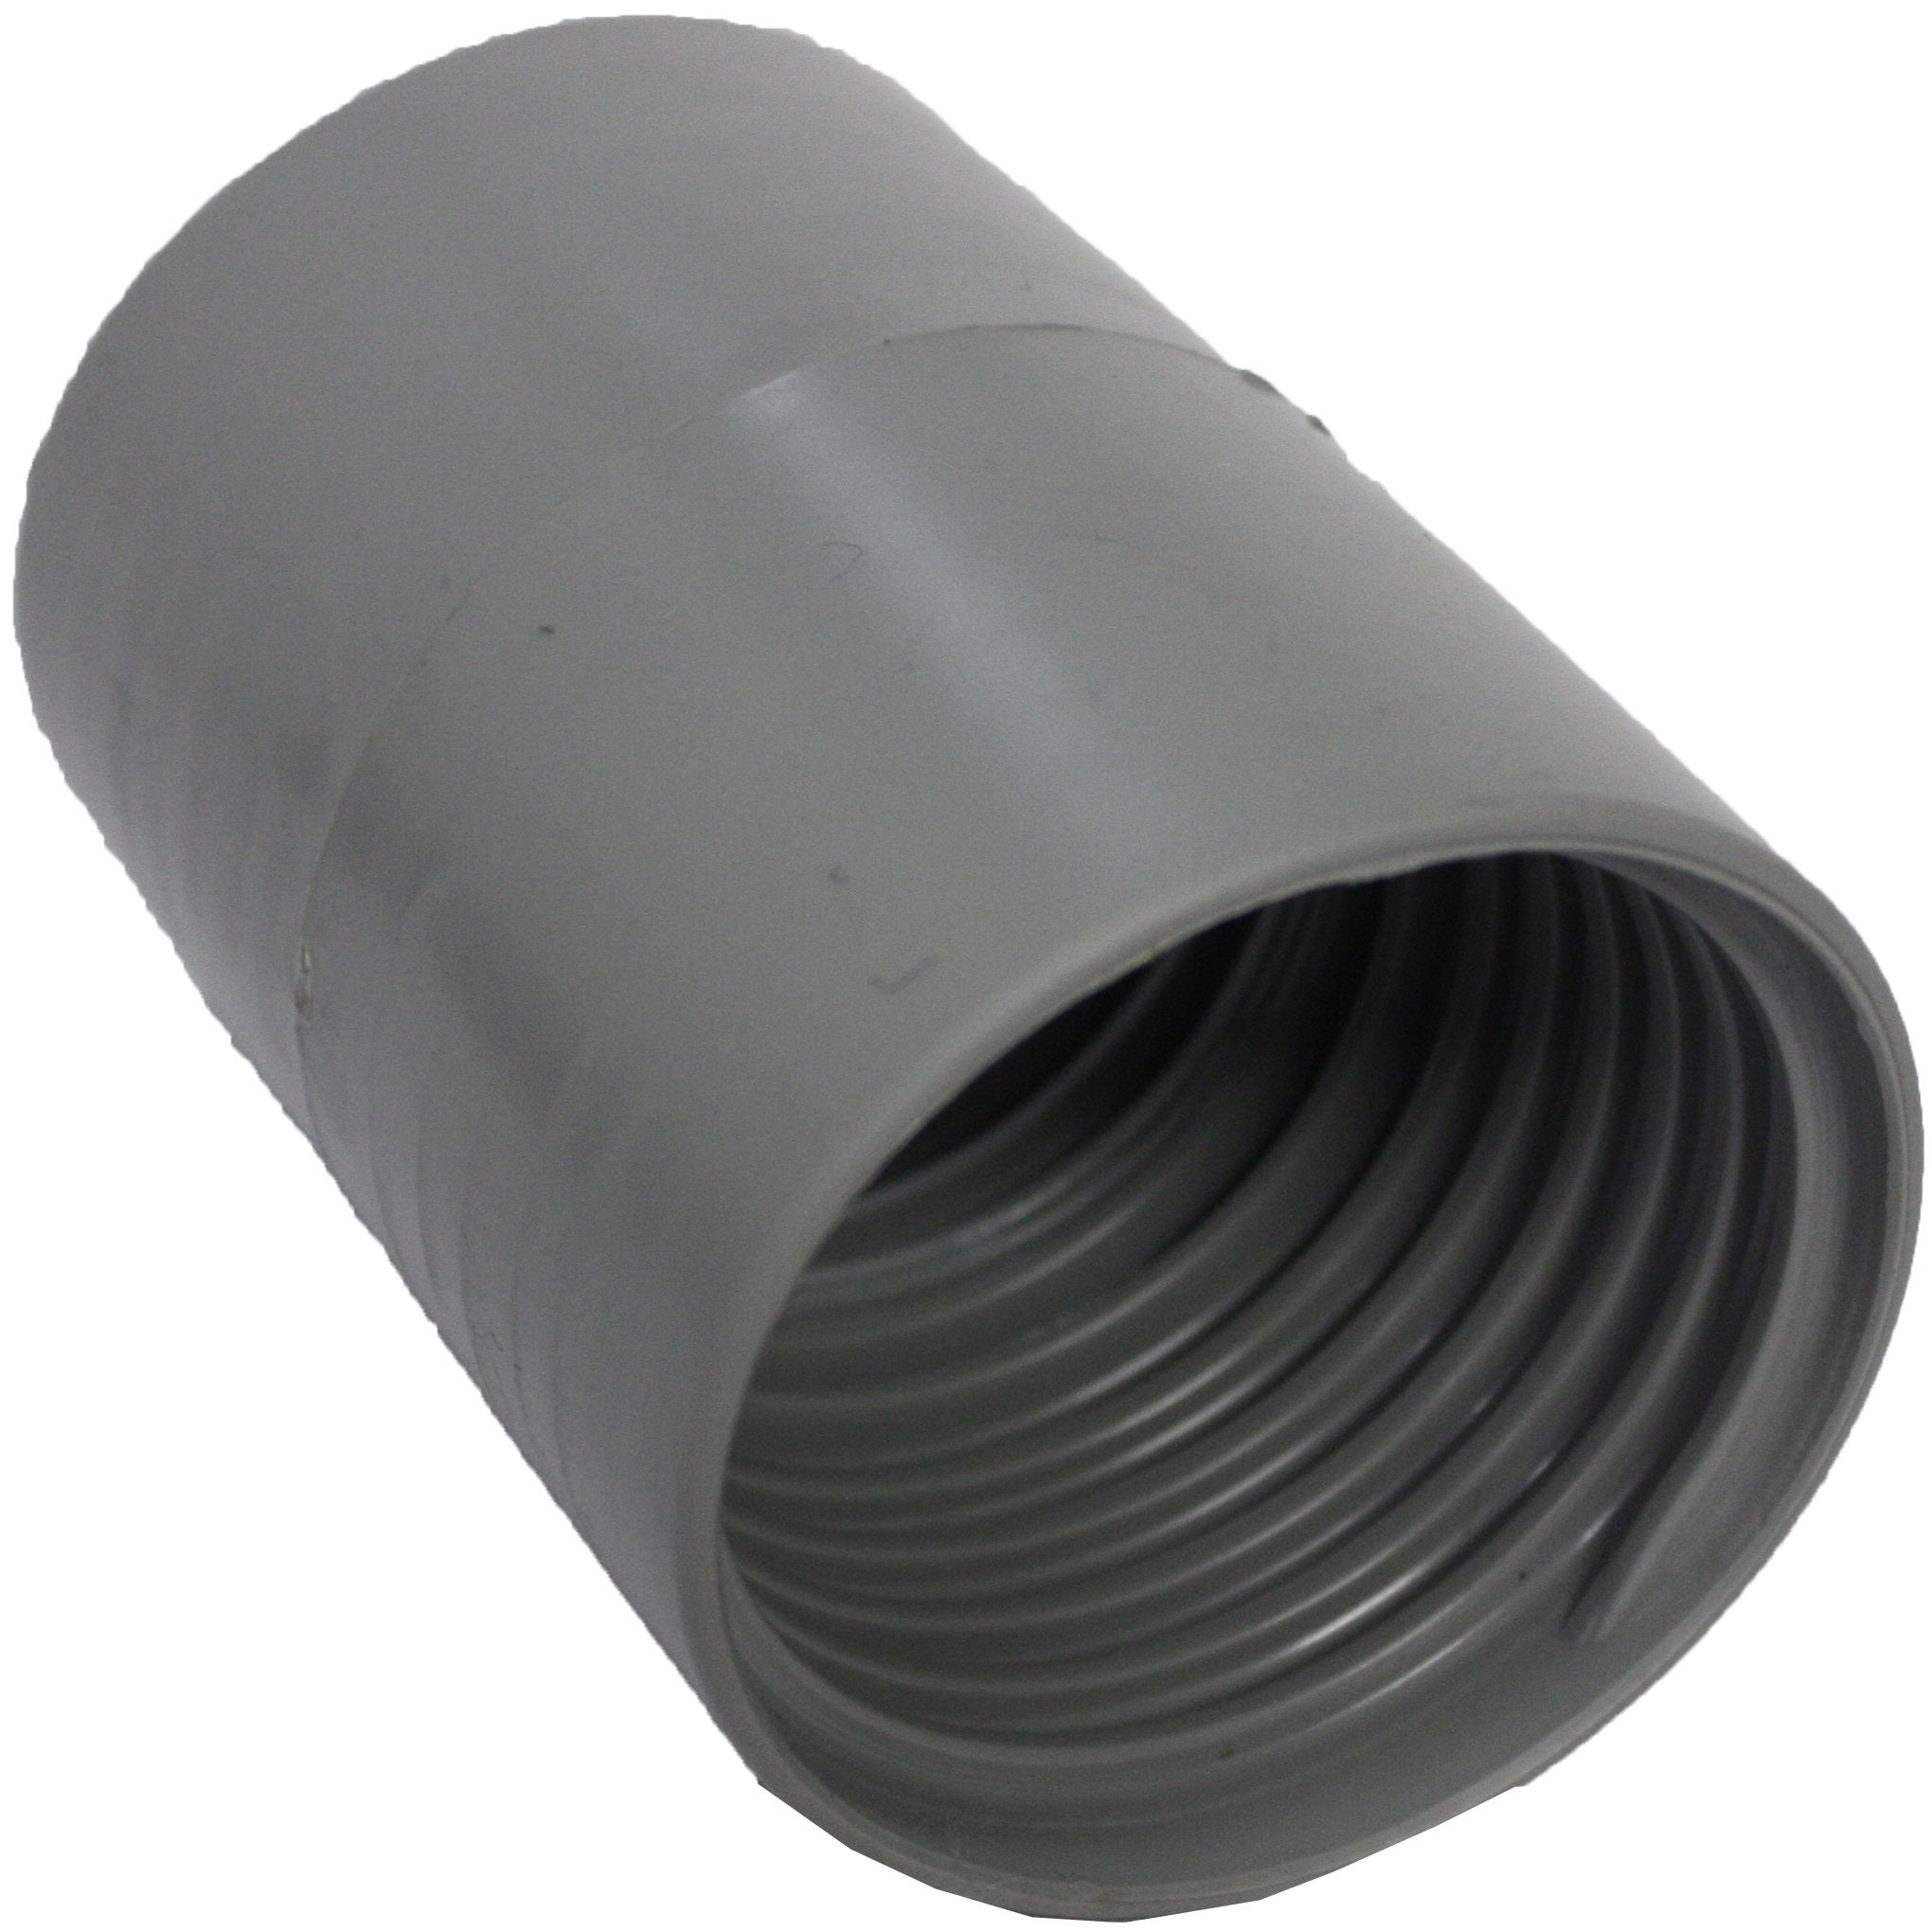 FILTA HOSE JOINER 51MM - GREY